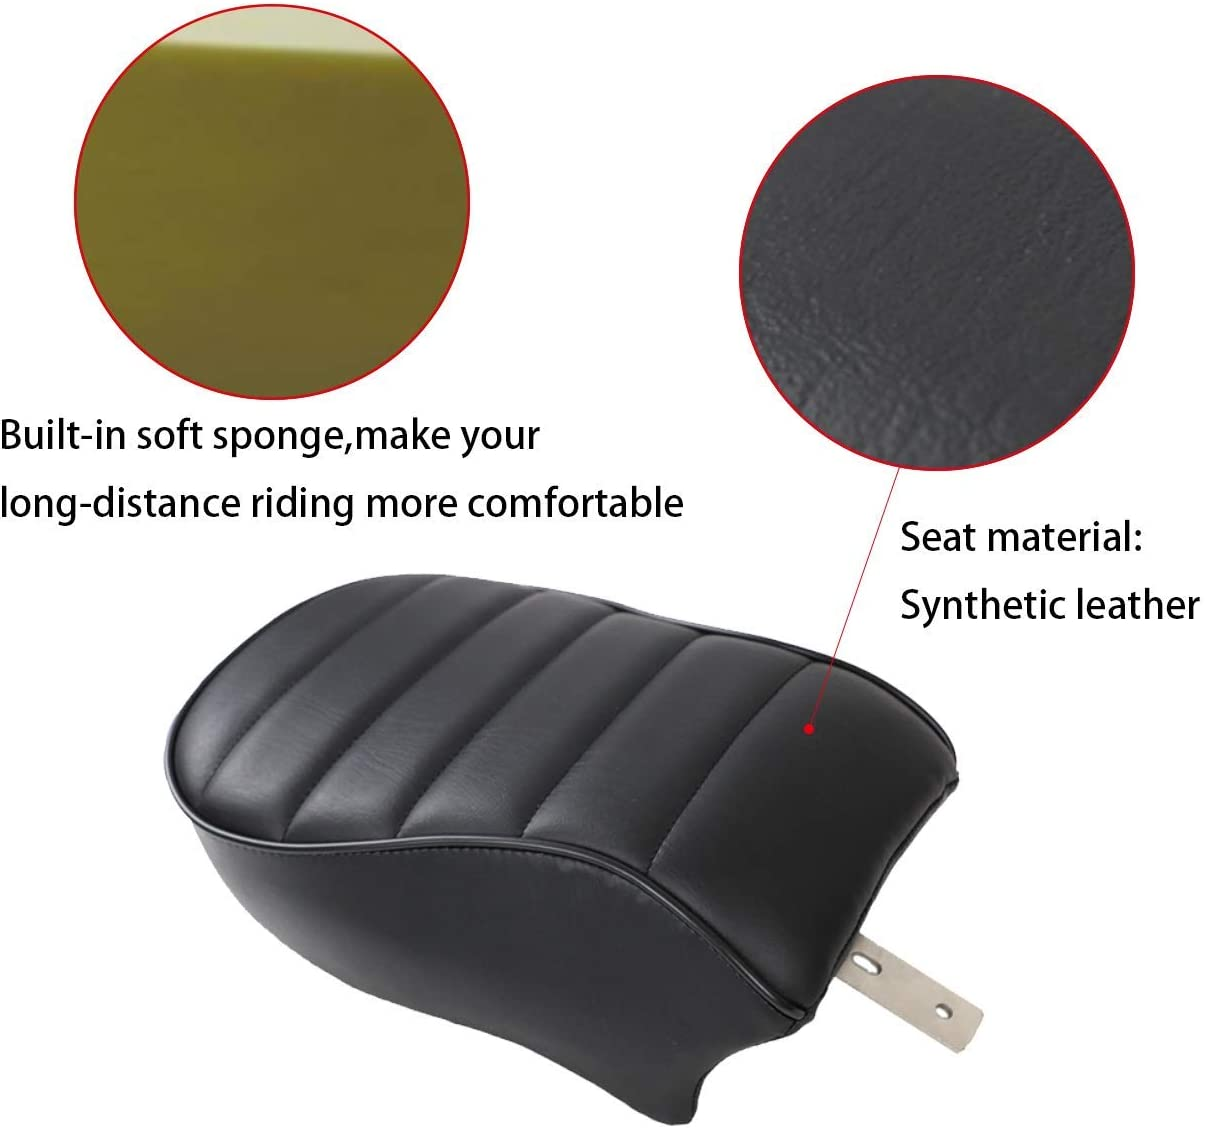 AUFER Black Leather Rear Passenger Pillion Seat for Sportster Iron 883 XL883N 2016-2019